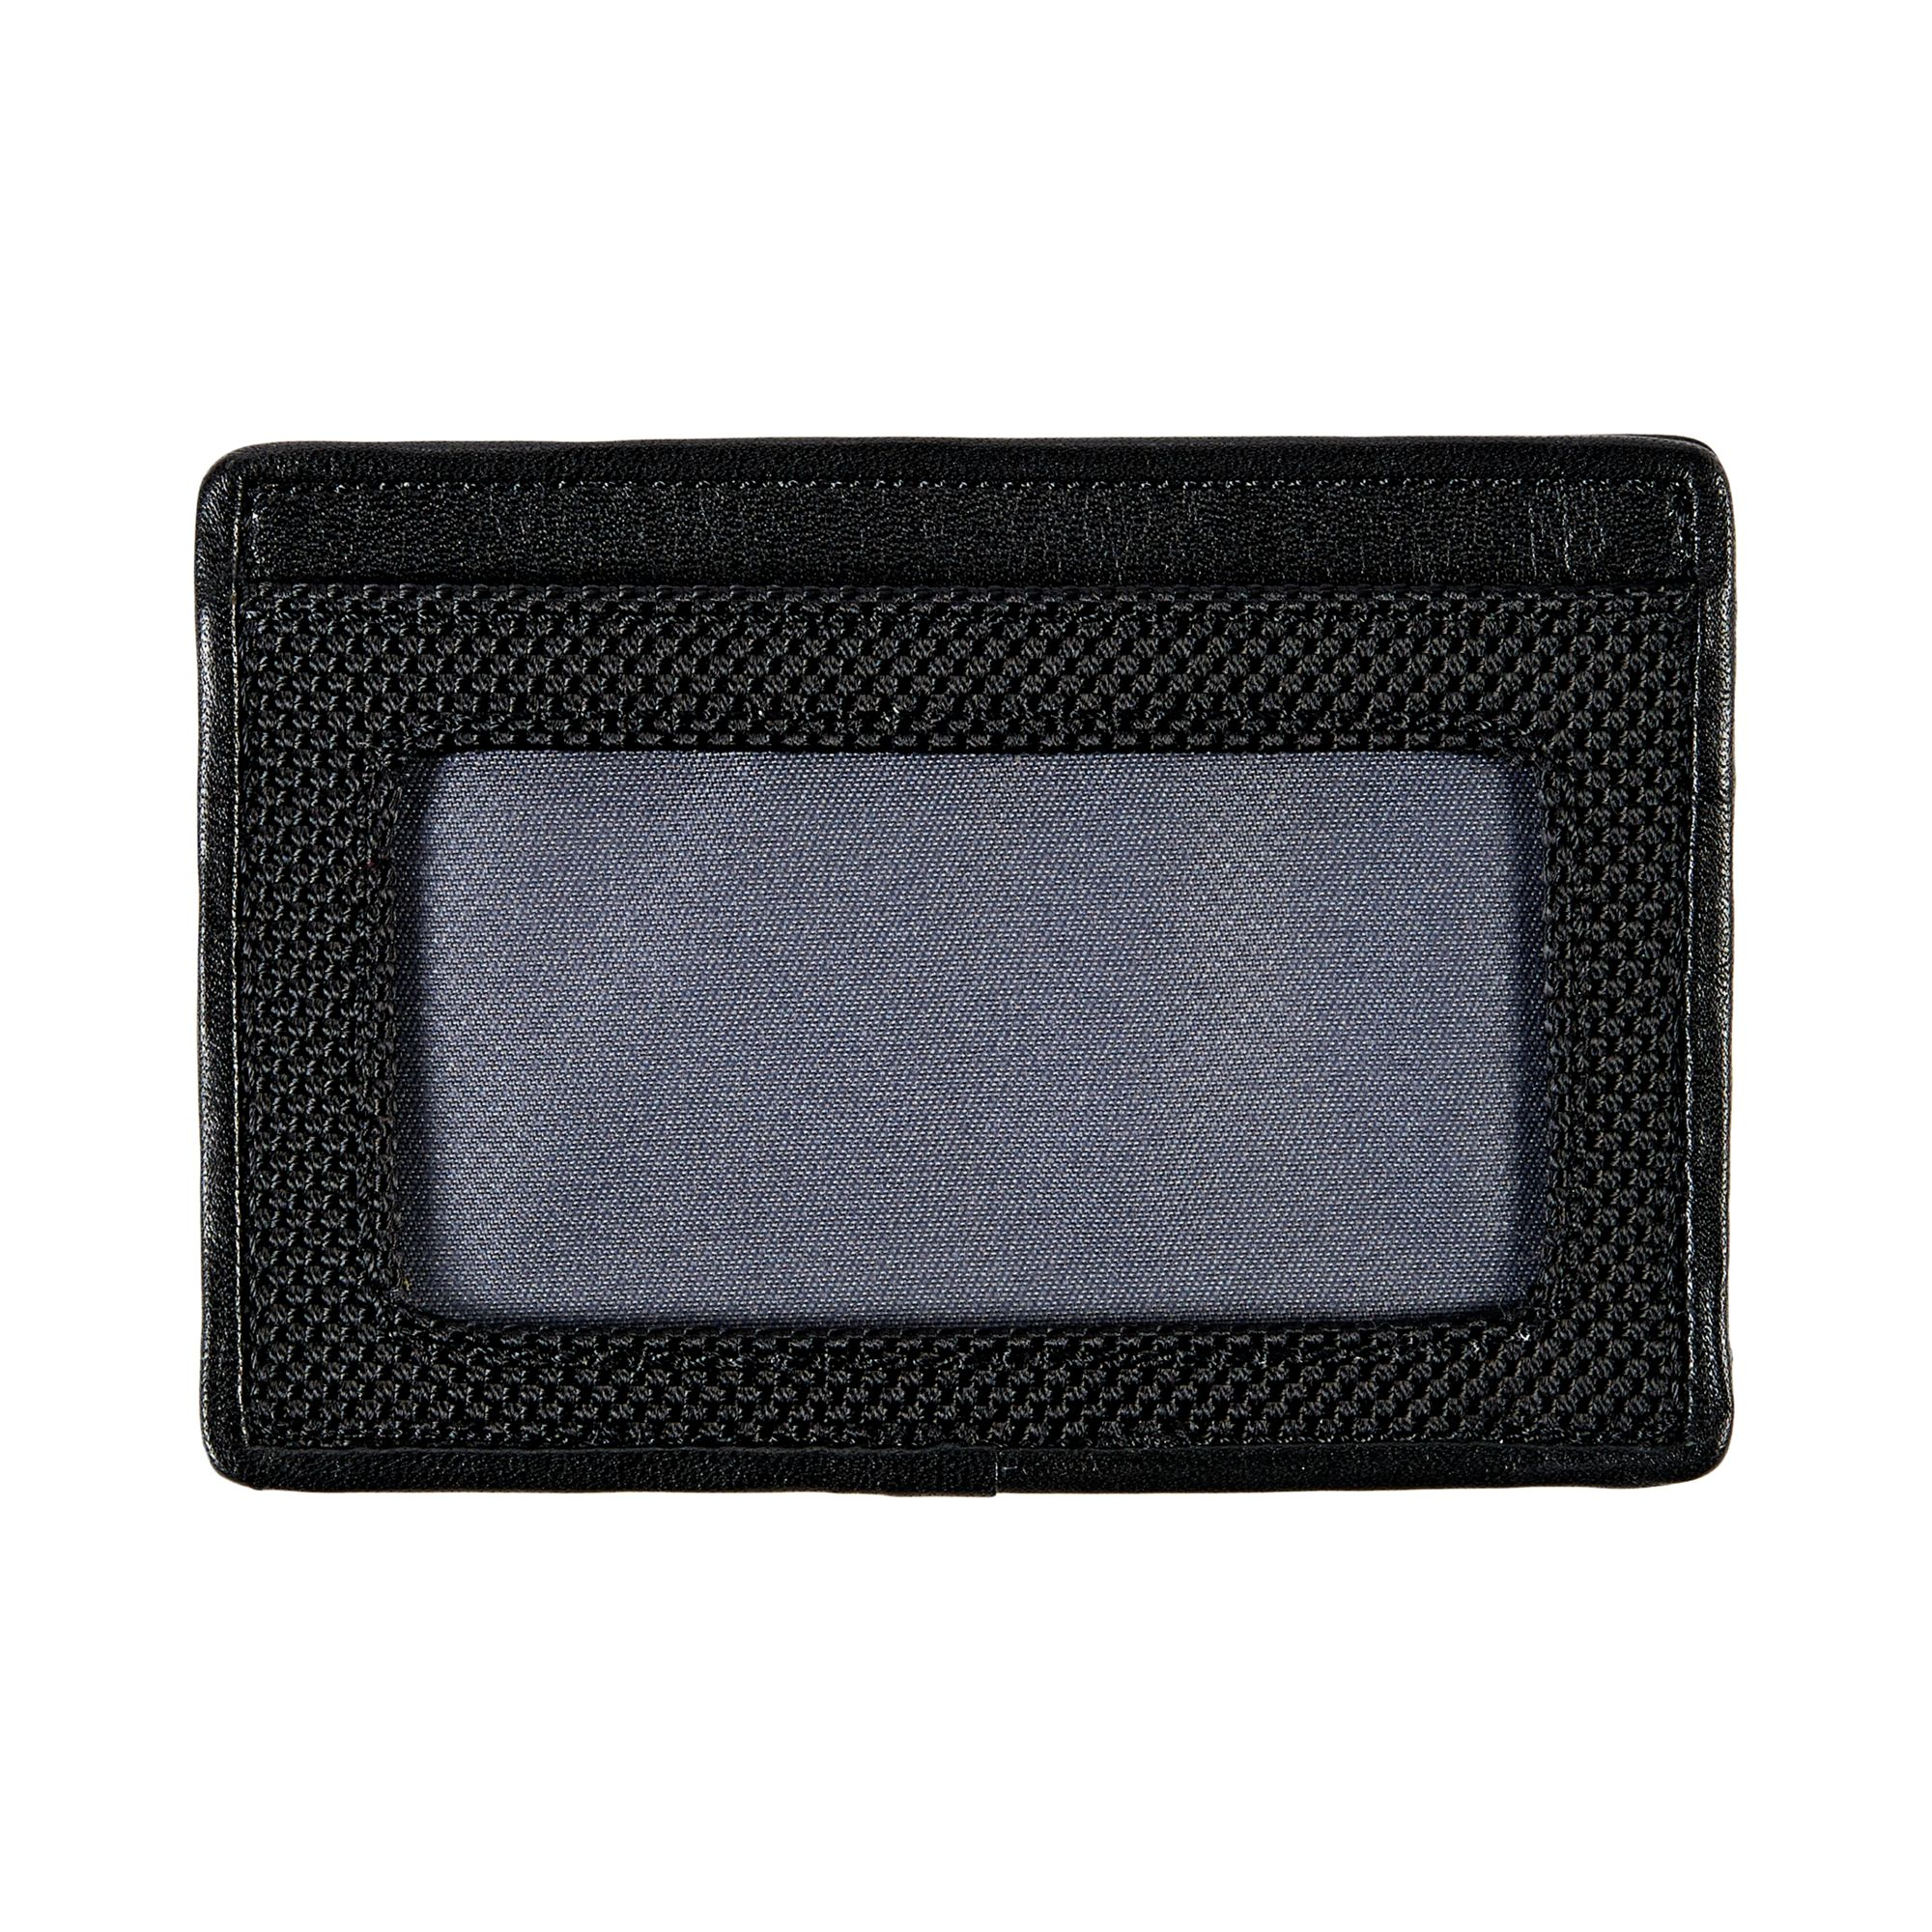 TUMI ID Lock™ Slim Card Case - Alpha - Tumi United States